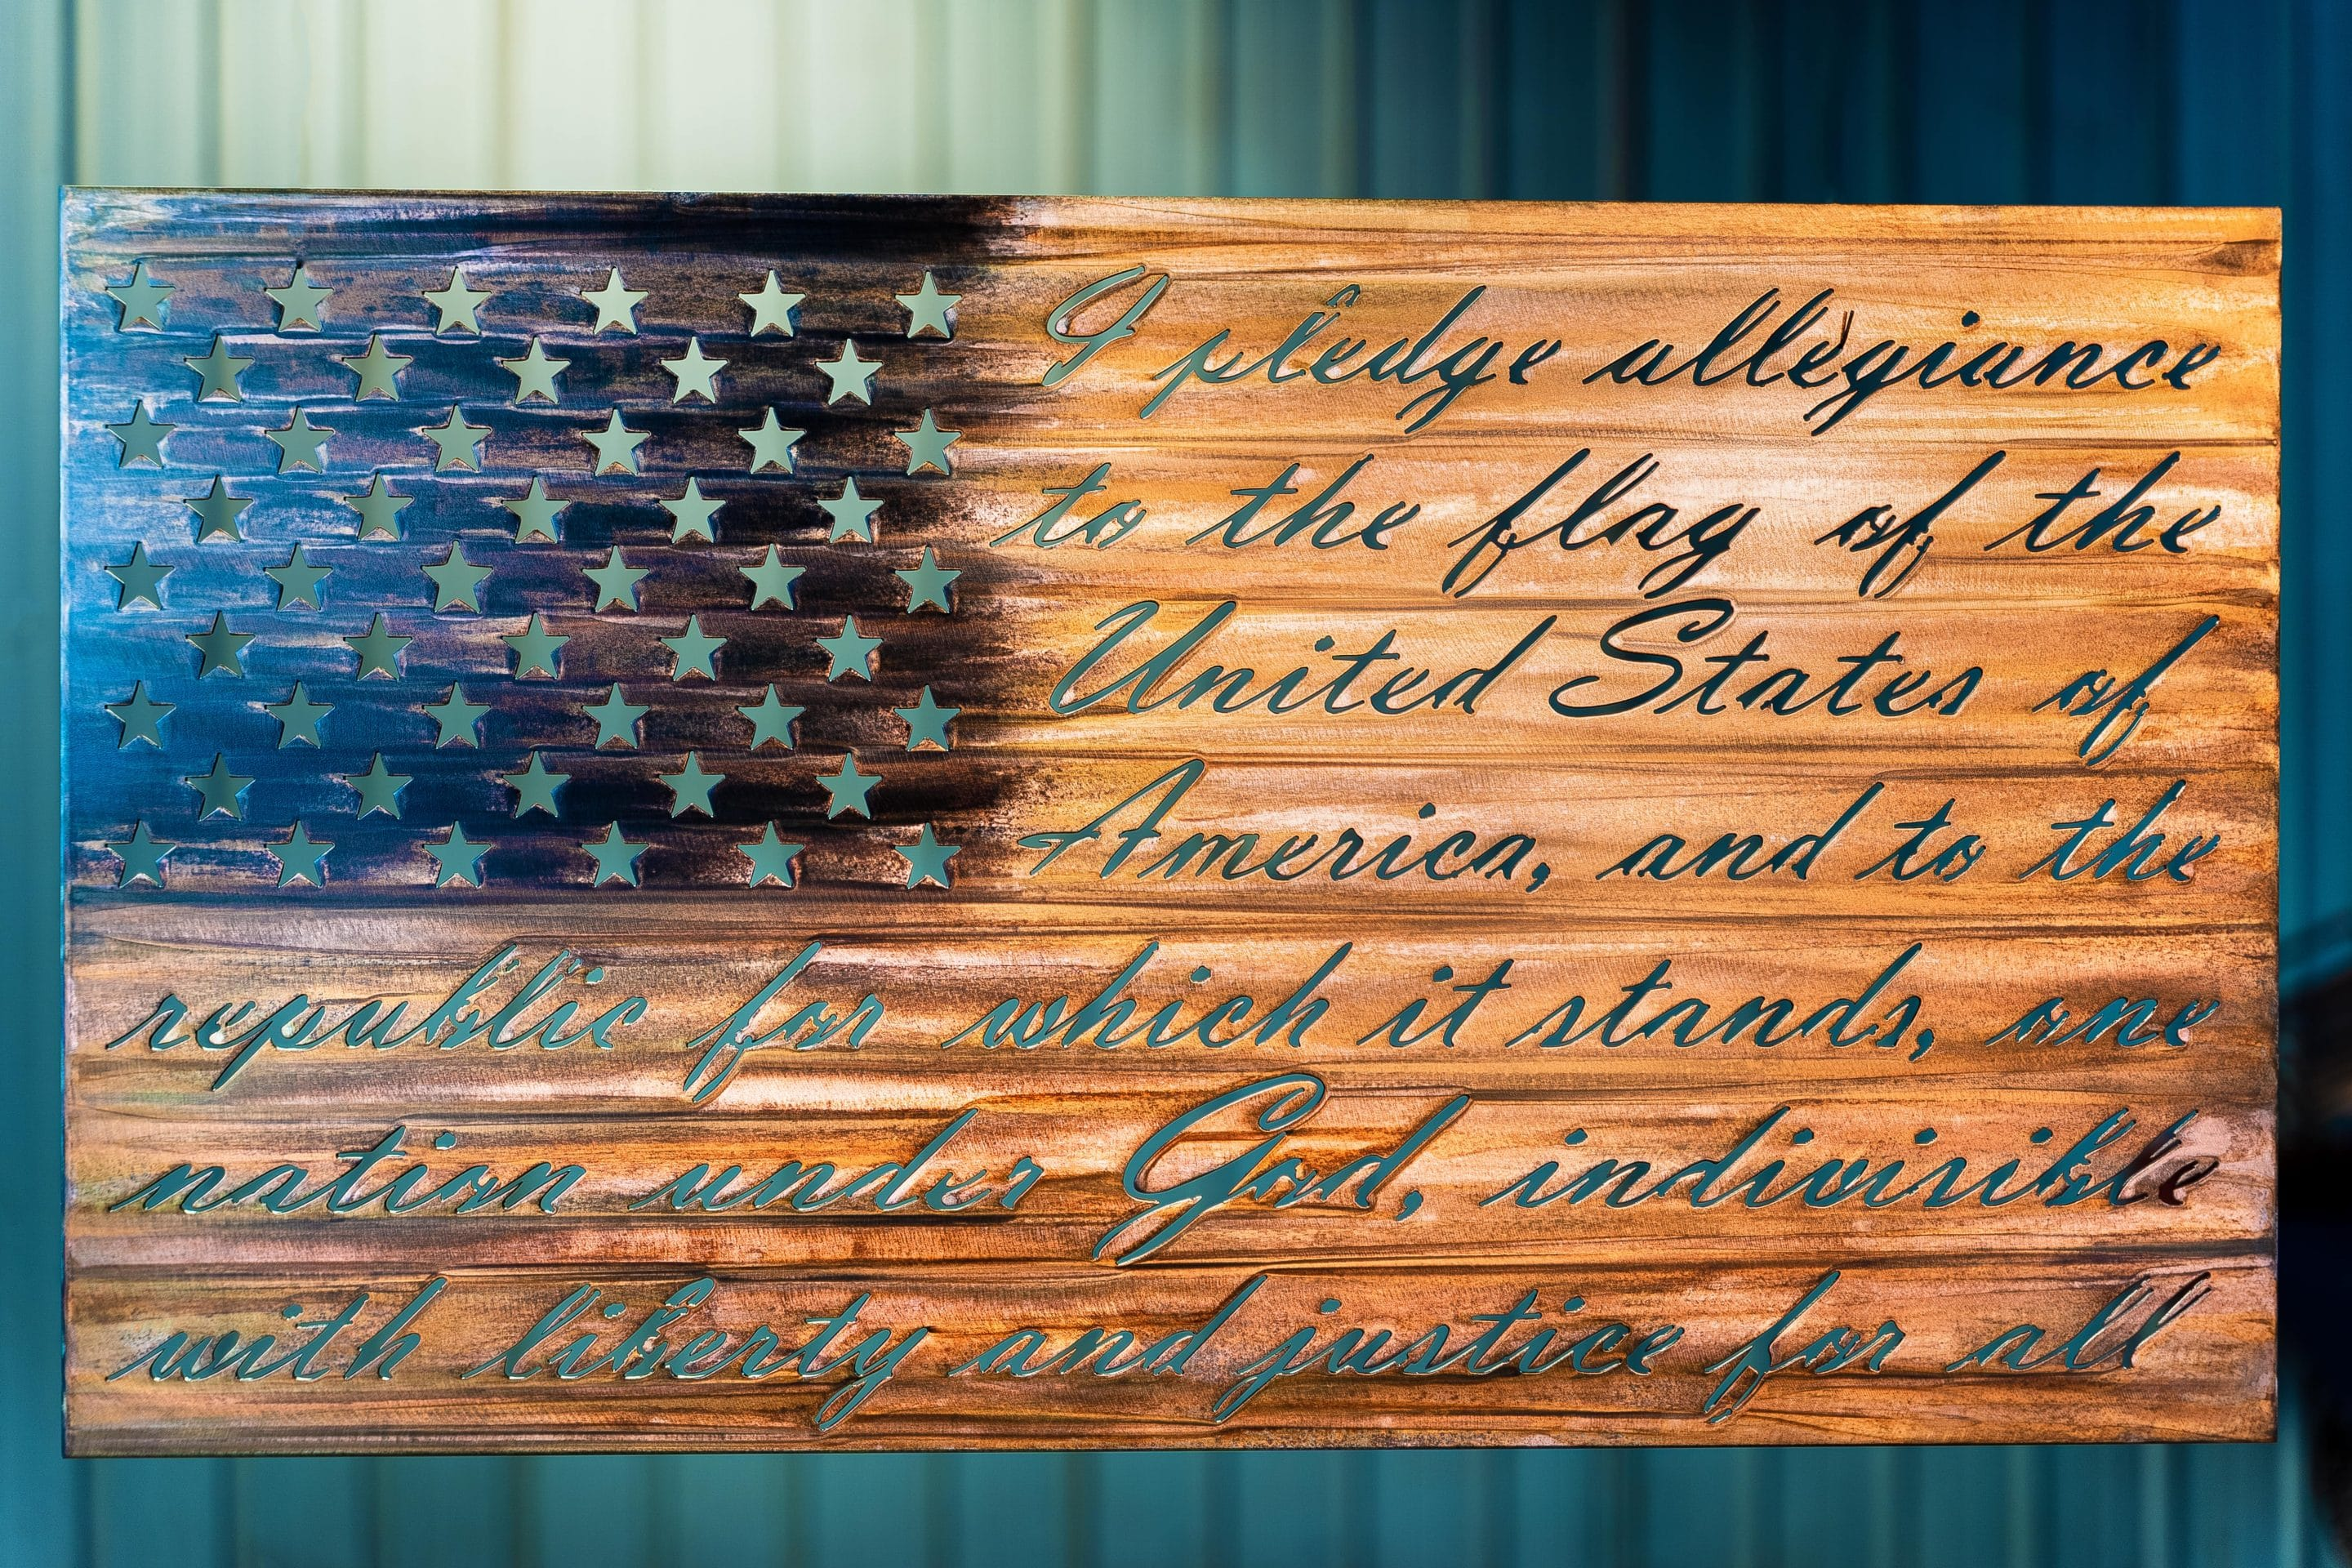 American Flag with the pledge of allegiance and stars cutout of it.